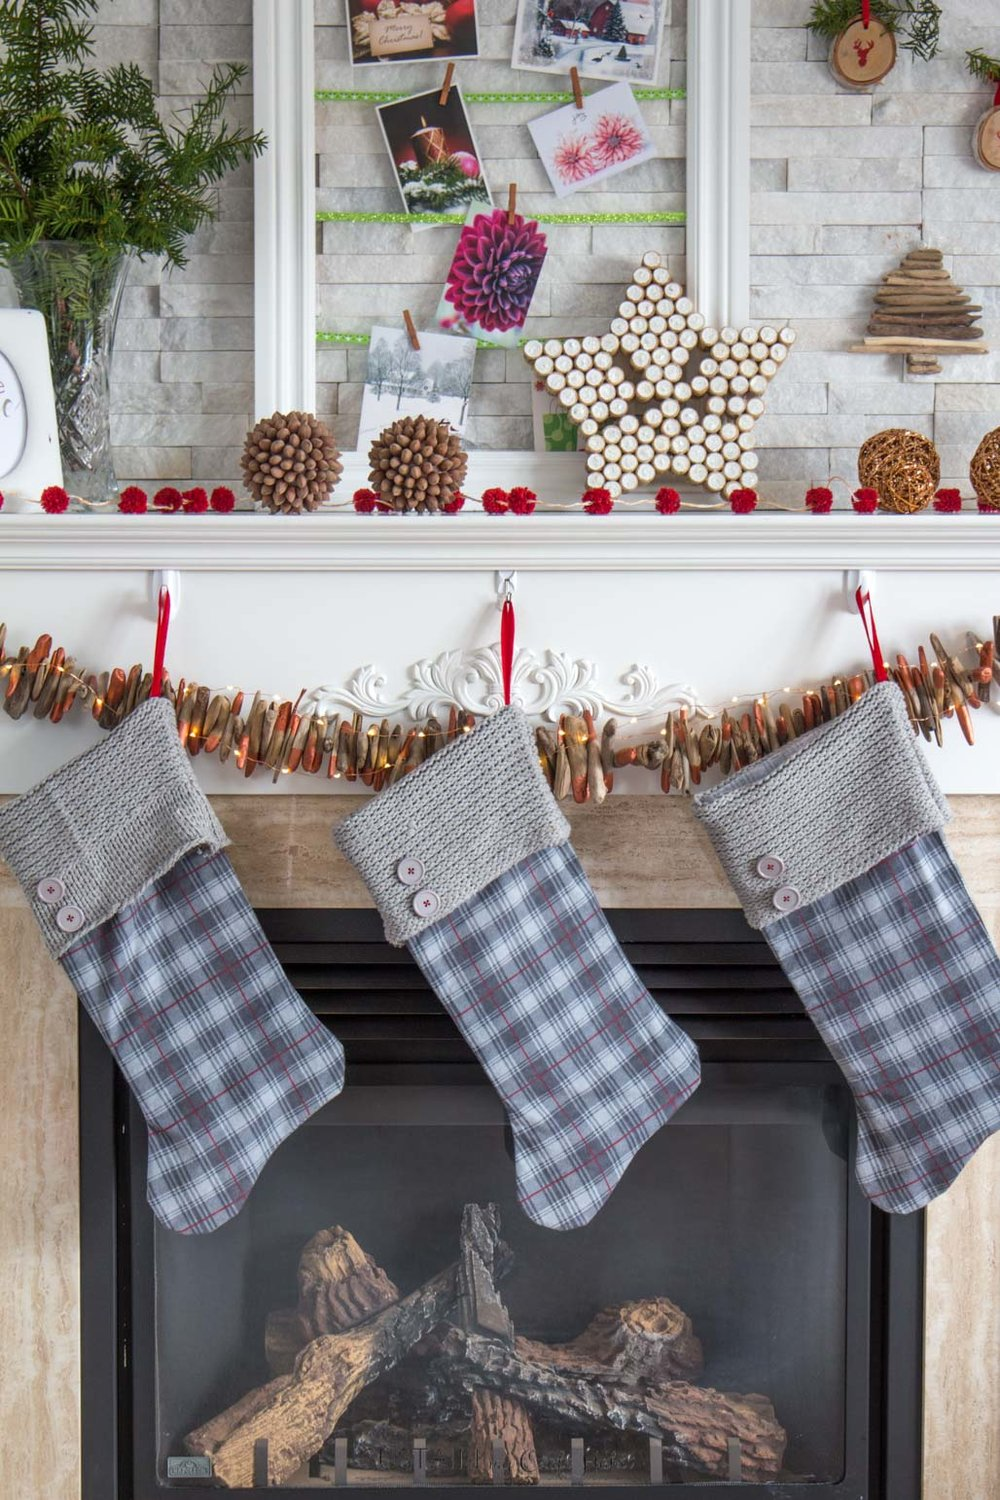 Upcycled flannel and knit sweater DIY rustic Christmas stockings